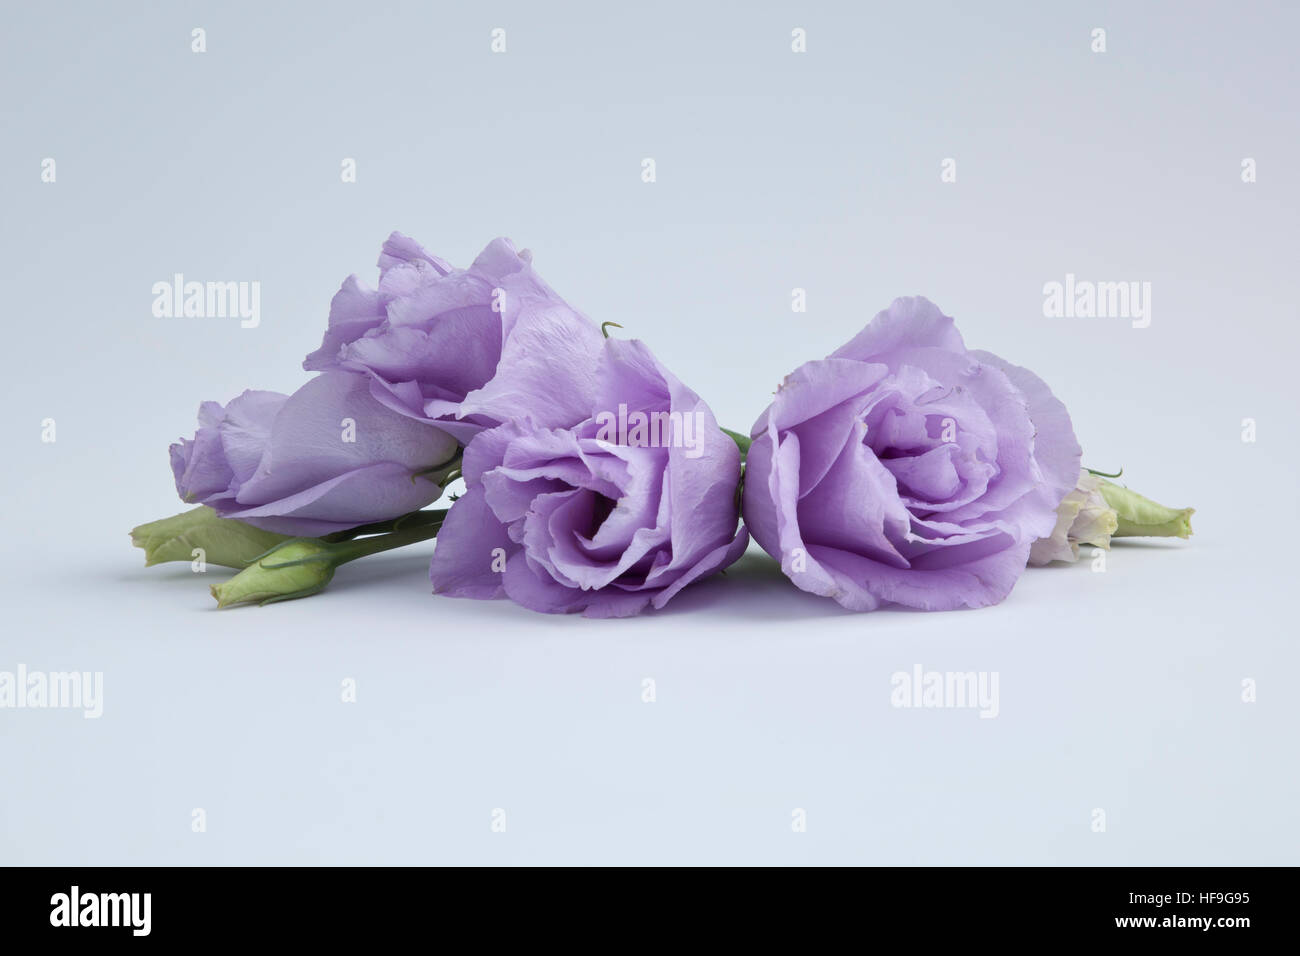 Prarie gentian flowers - Stock Image